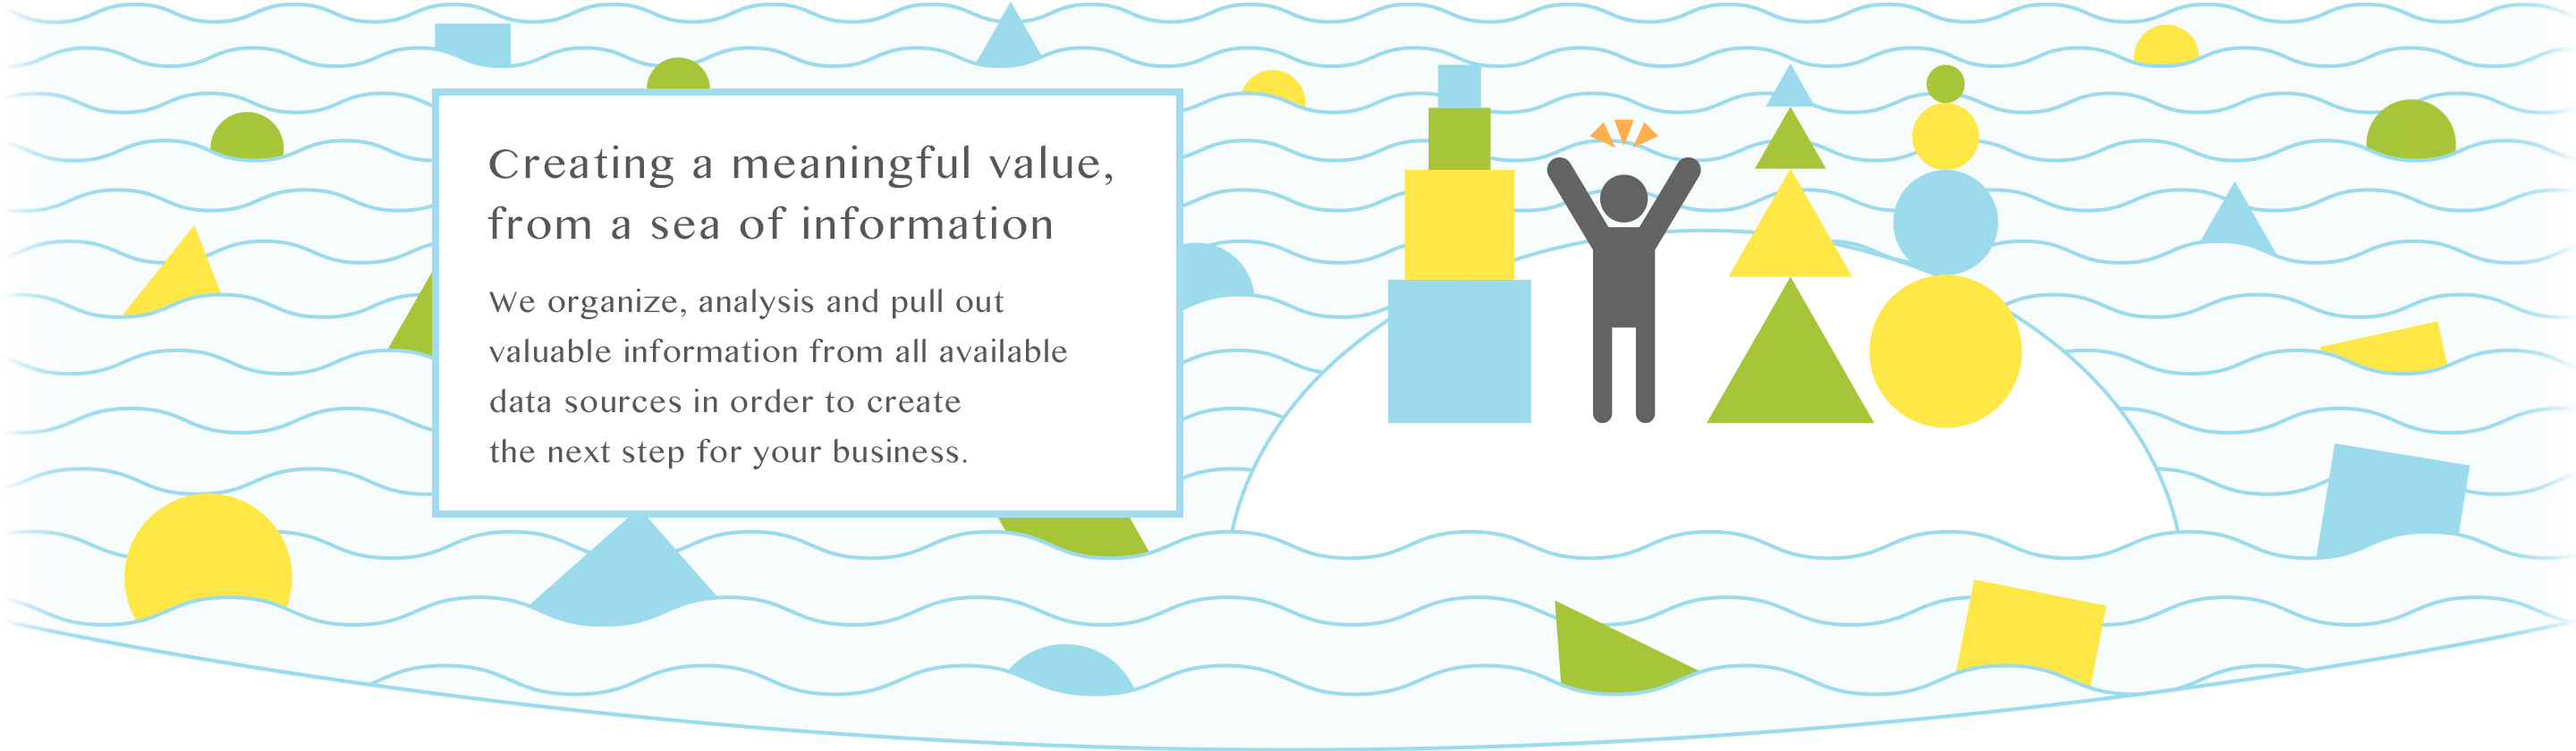 creating a meaningful value, from a sea of information